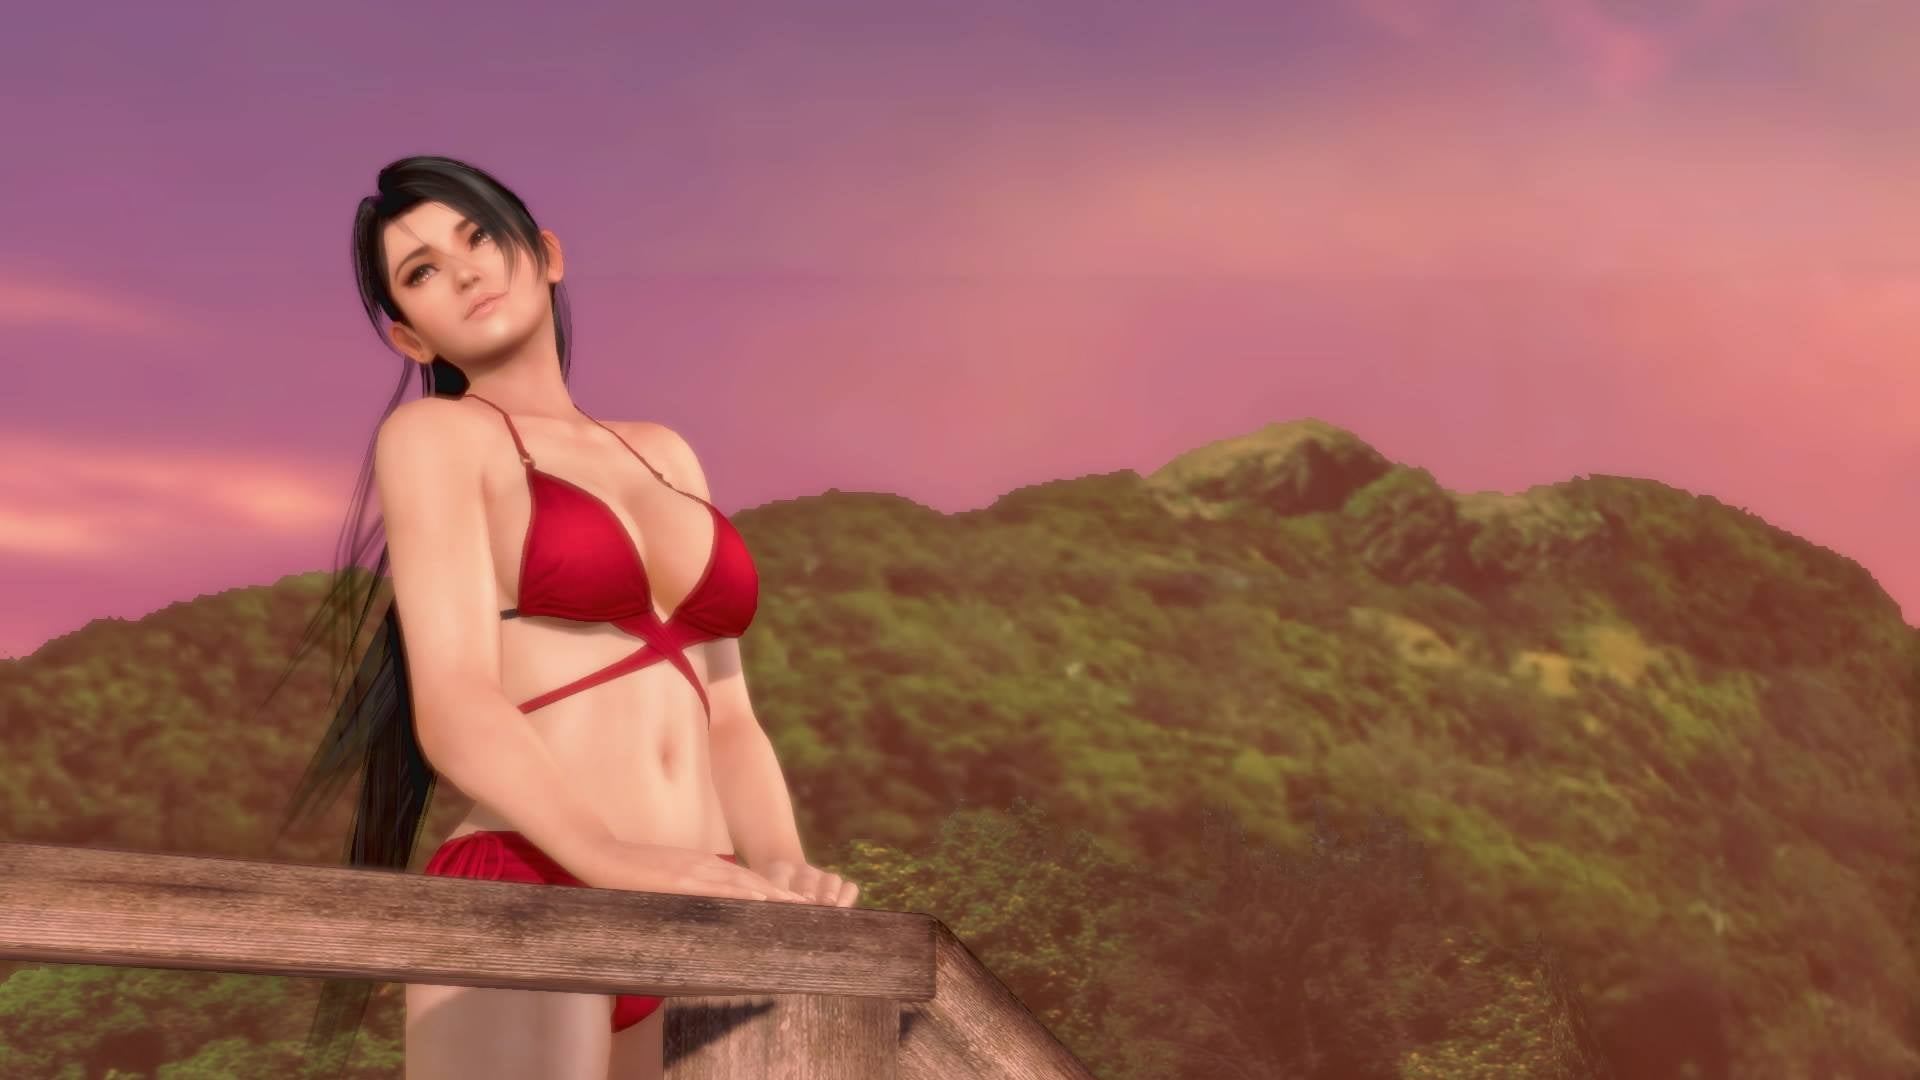 Dead Or Alive Xtreme 3 Isn T Worth All The Drama